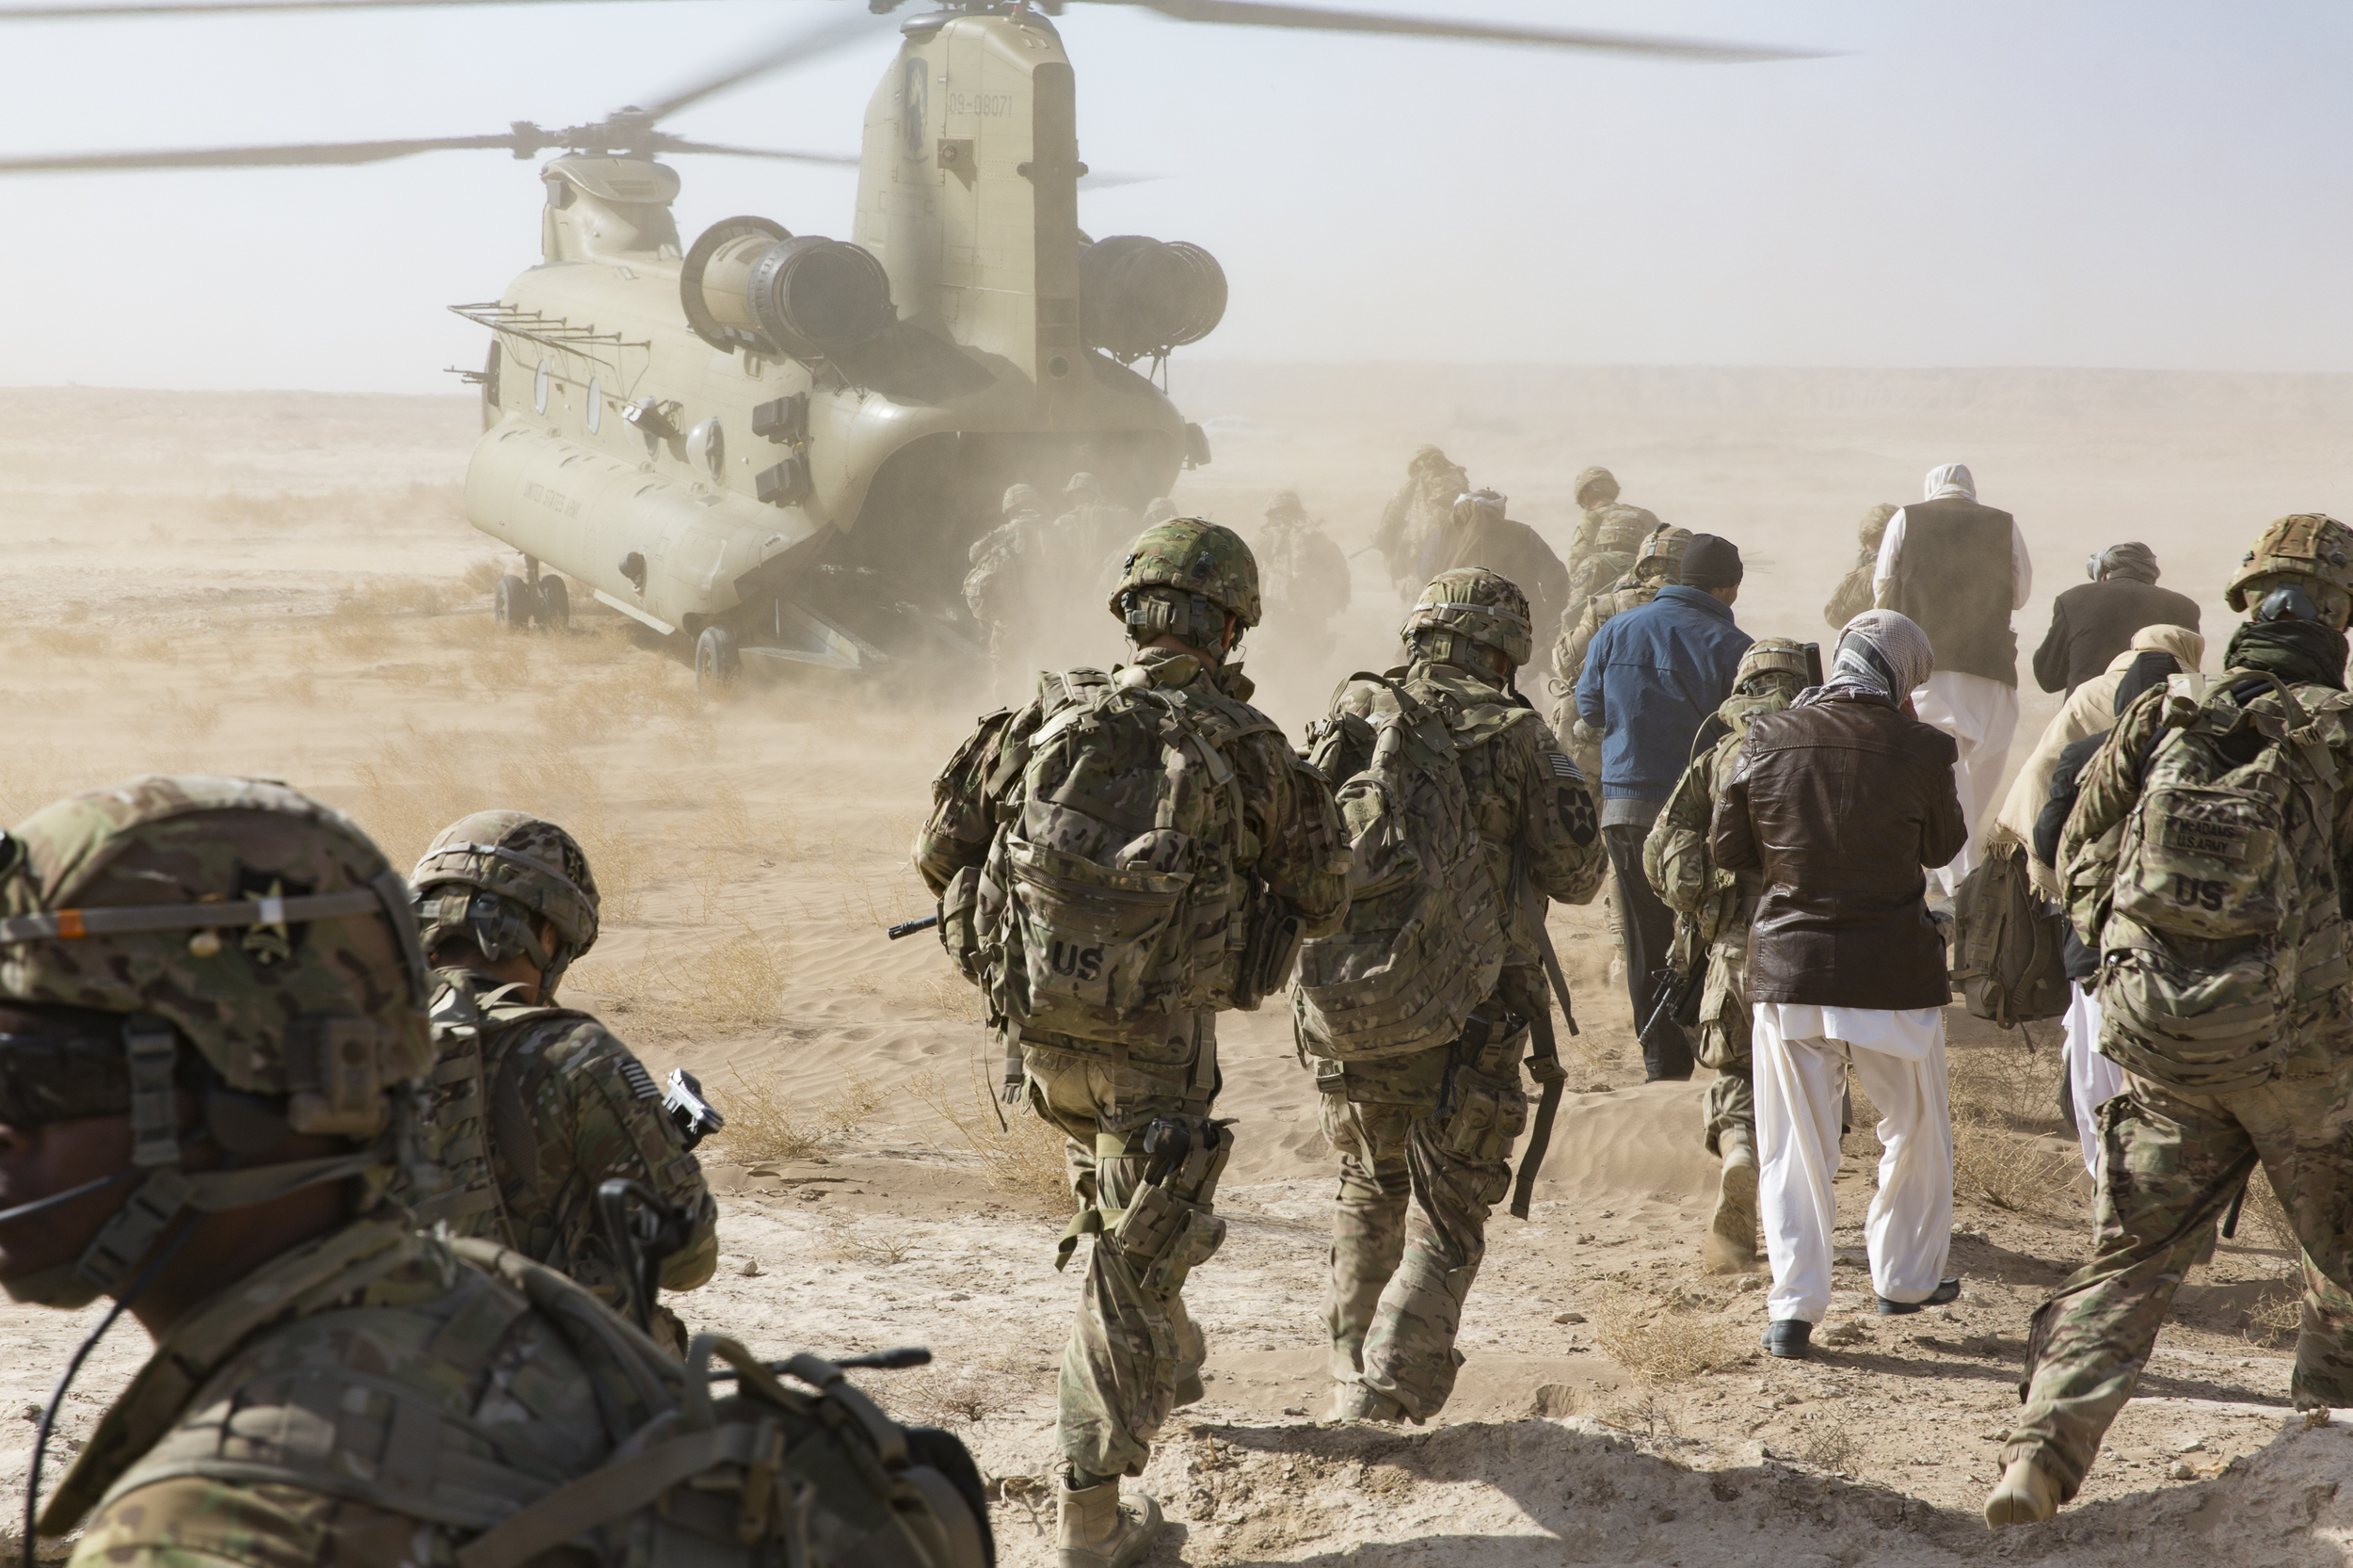 US Army Soldiers and Farahi leaders board a chinook helicopter in Lash-e Juwayn to return to Forward Operating Base Farah, Afghanistan